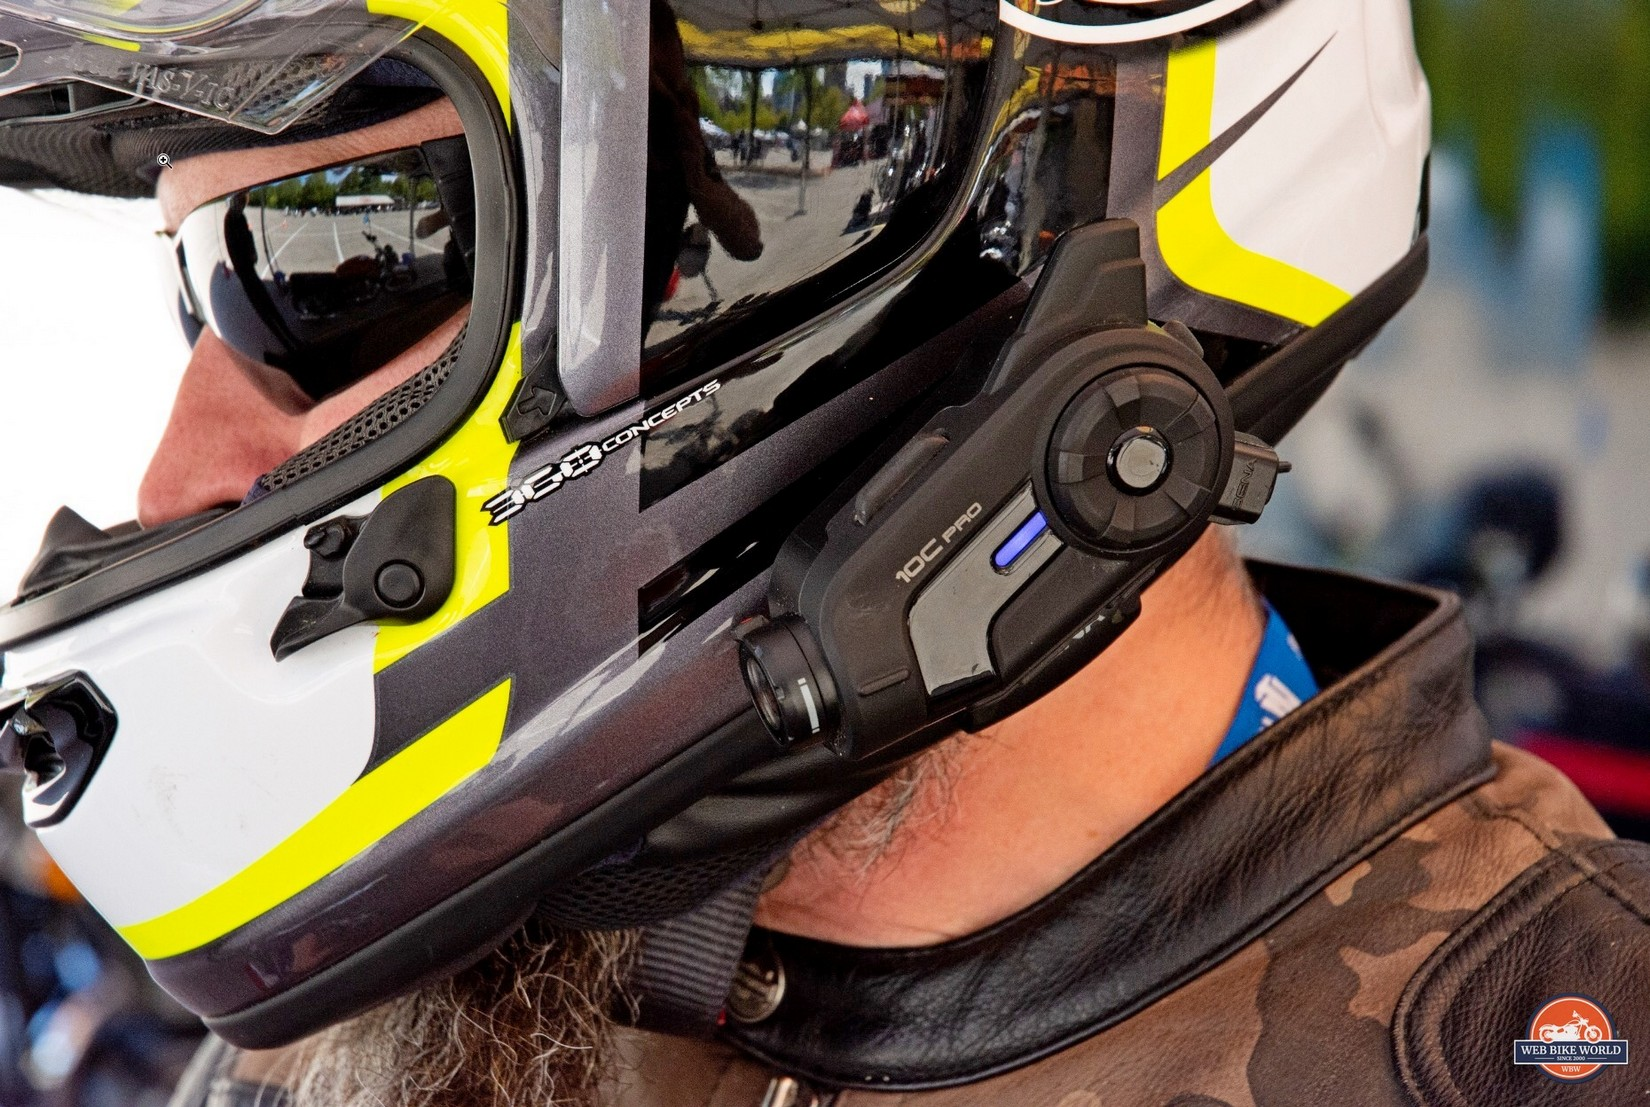 The Sena 10C Pro installed on an Arai DT-X helmet.